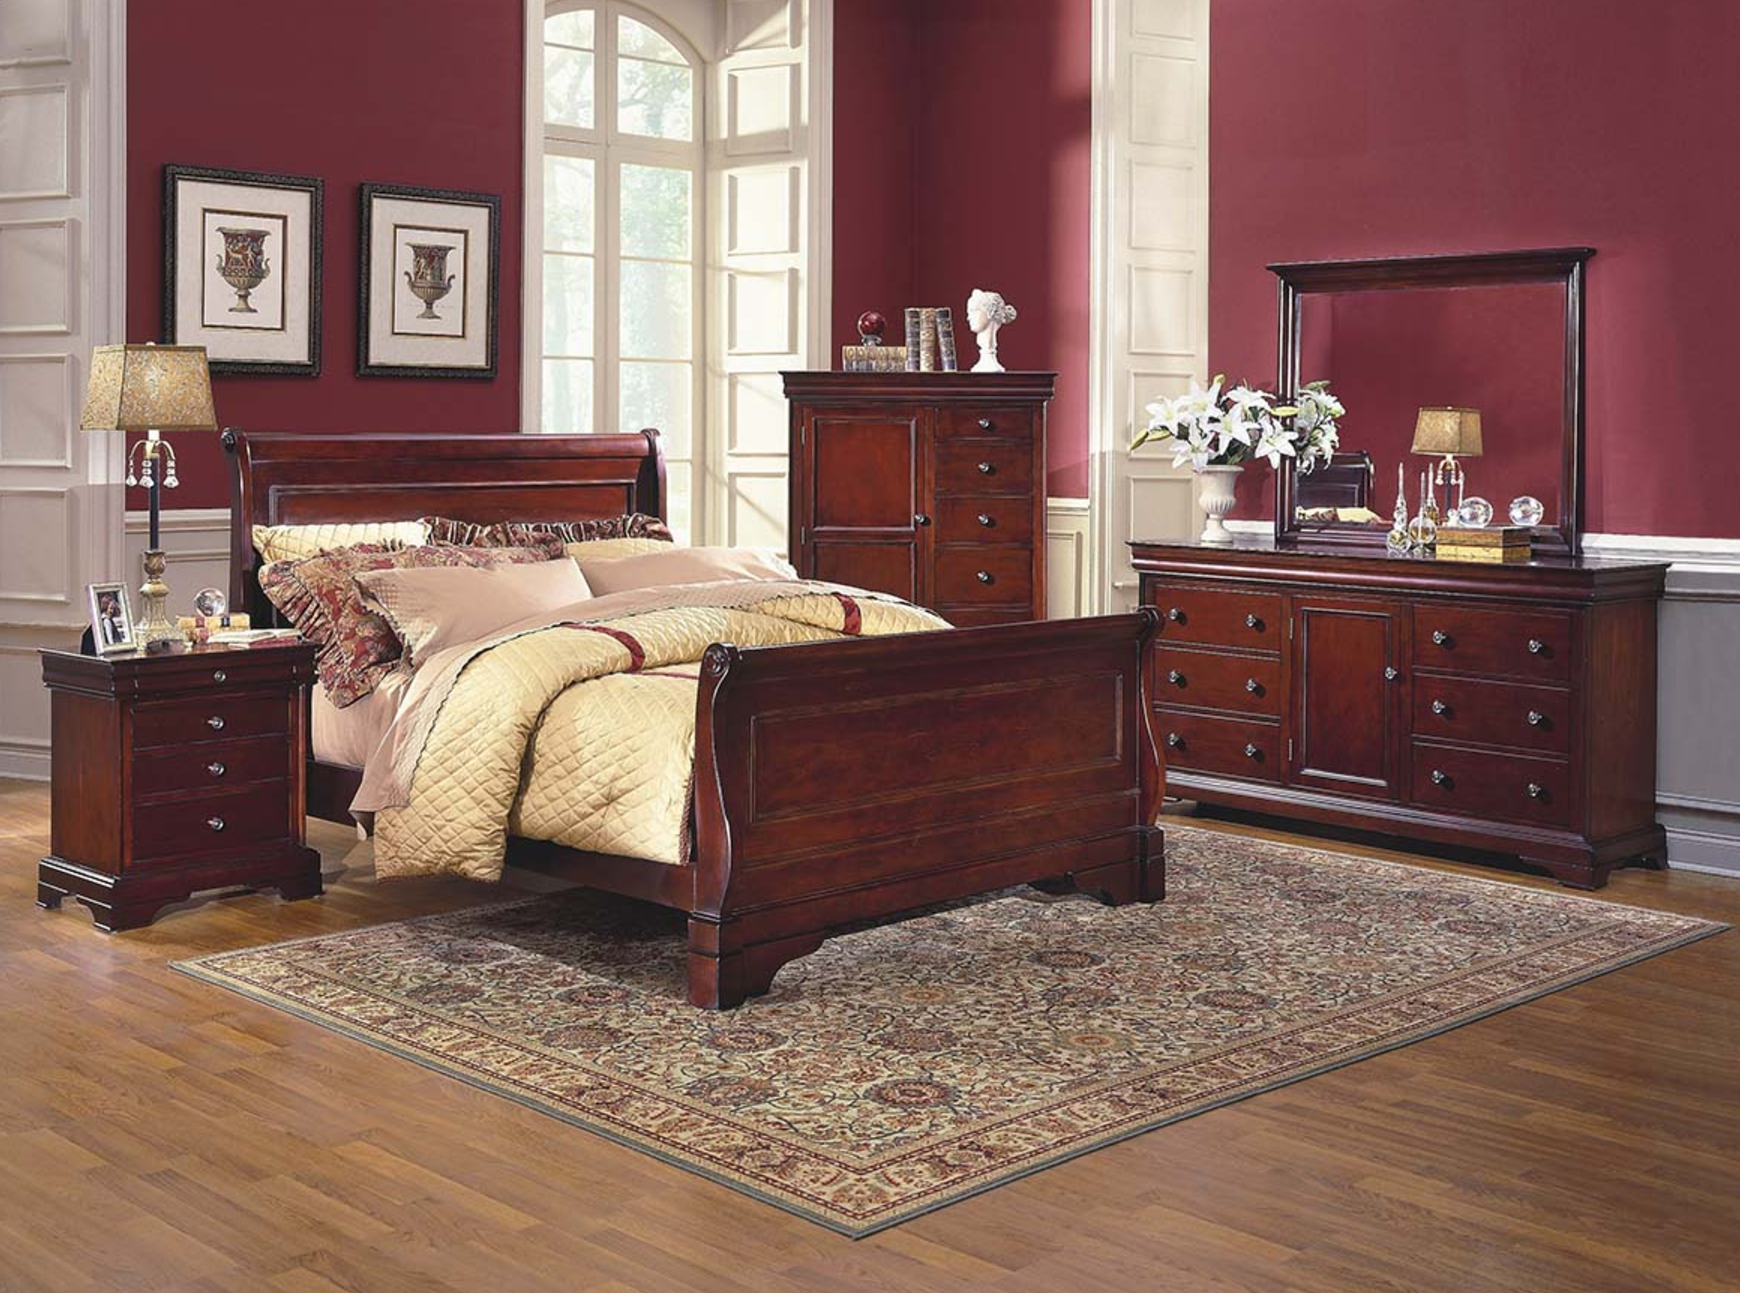 Versaille Bedroom Set